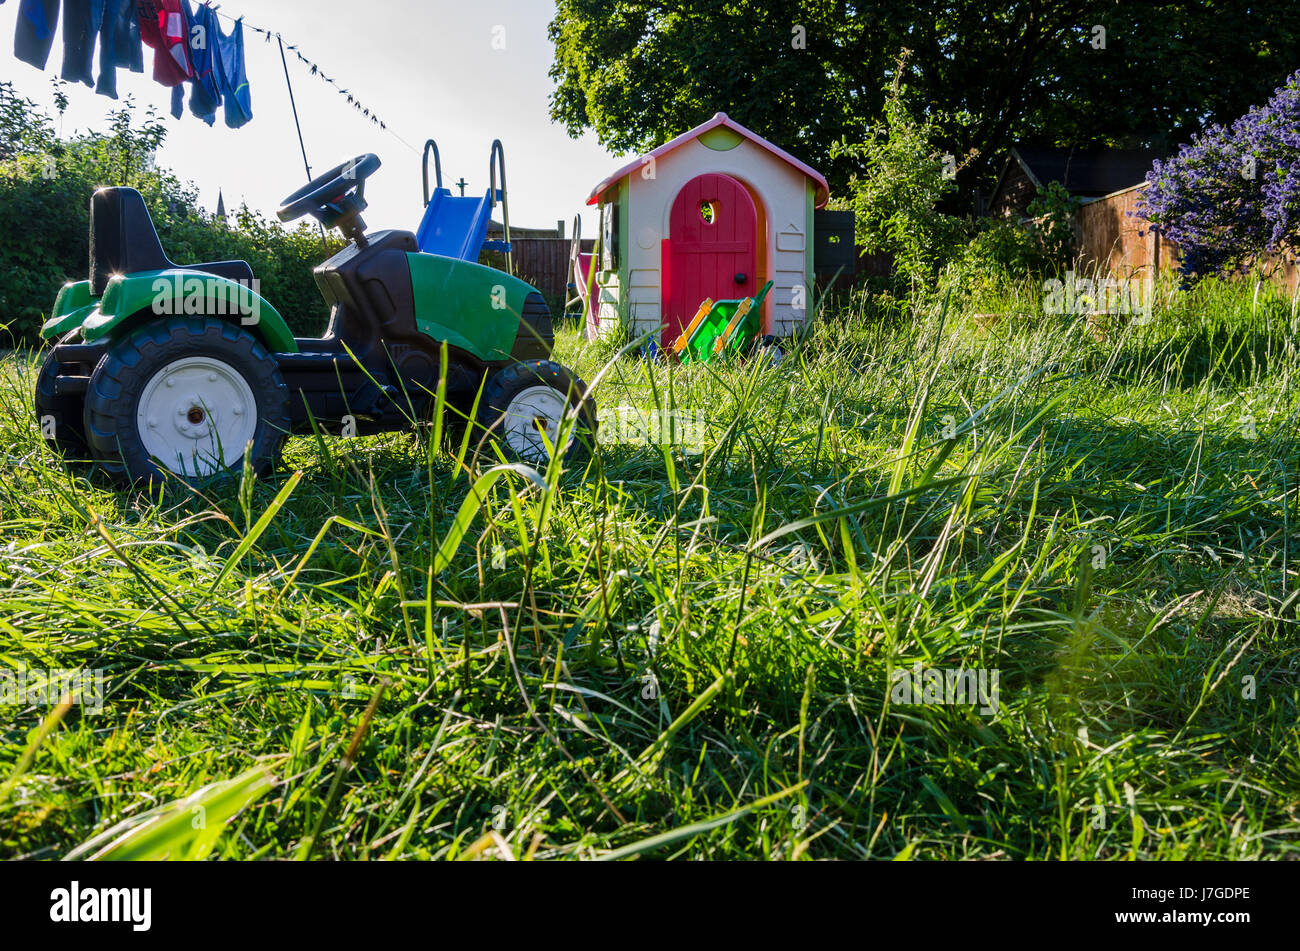 long-grass-and-toys-in-a-garden-J7GDPE.jpg